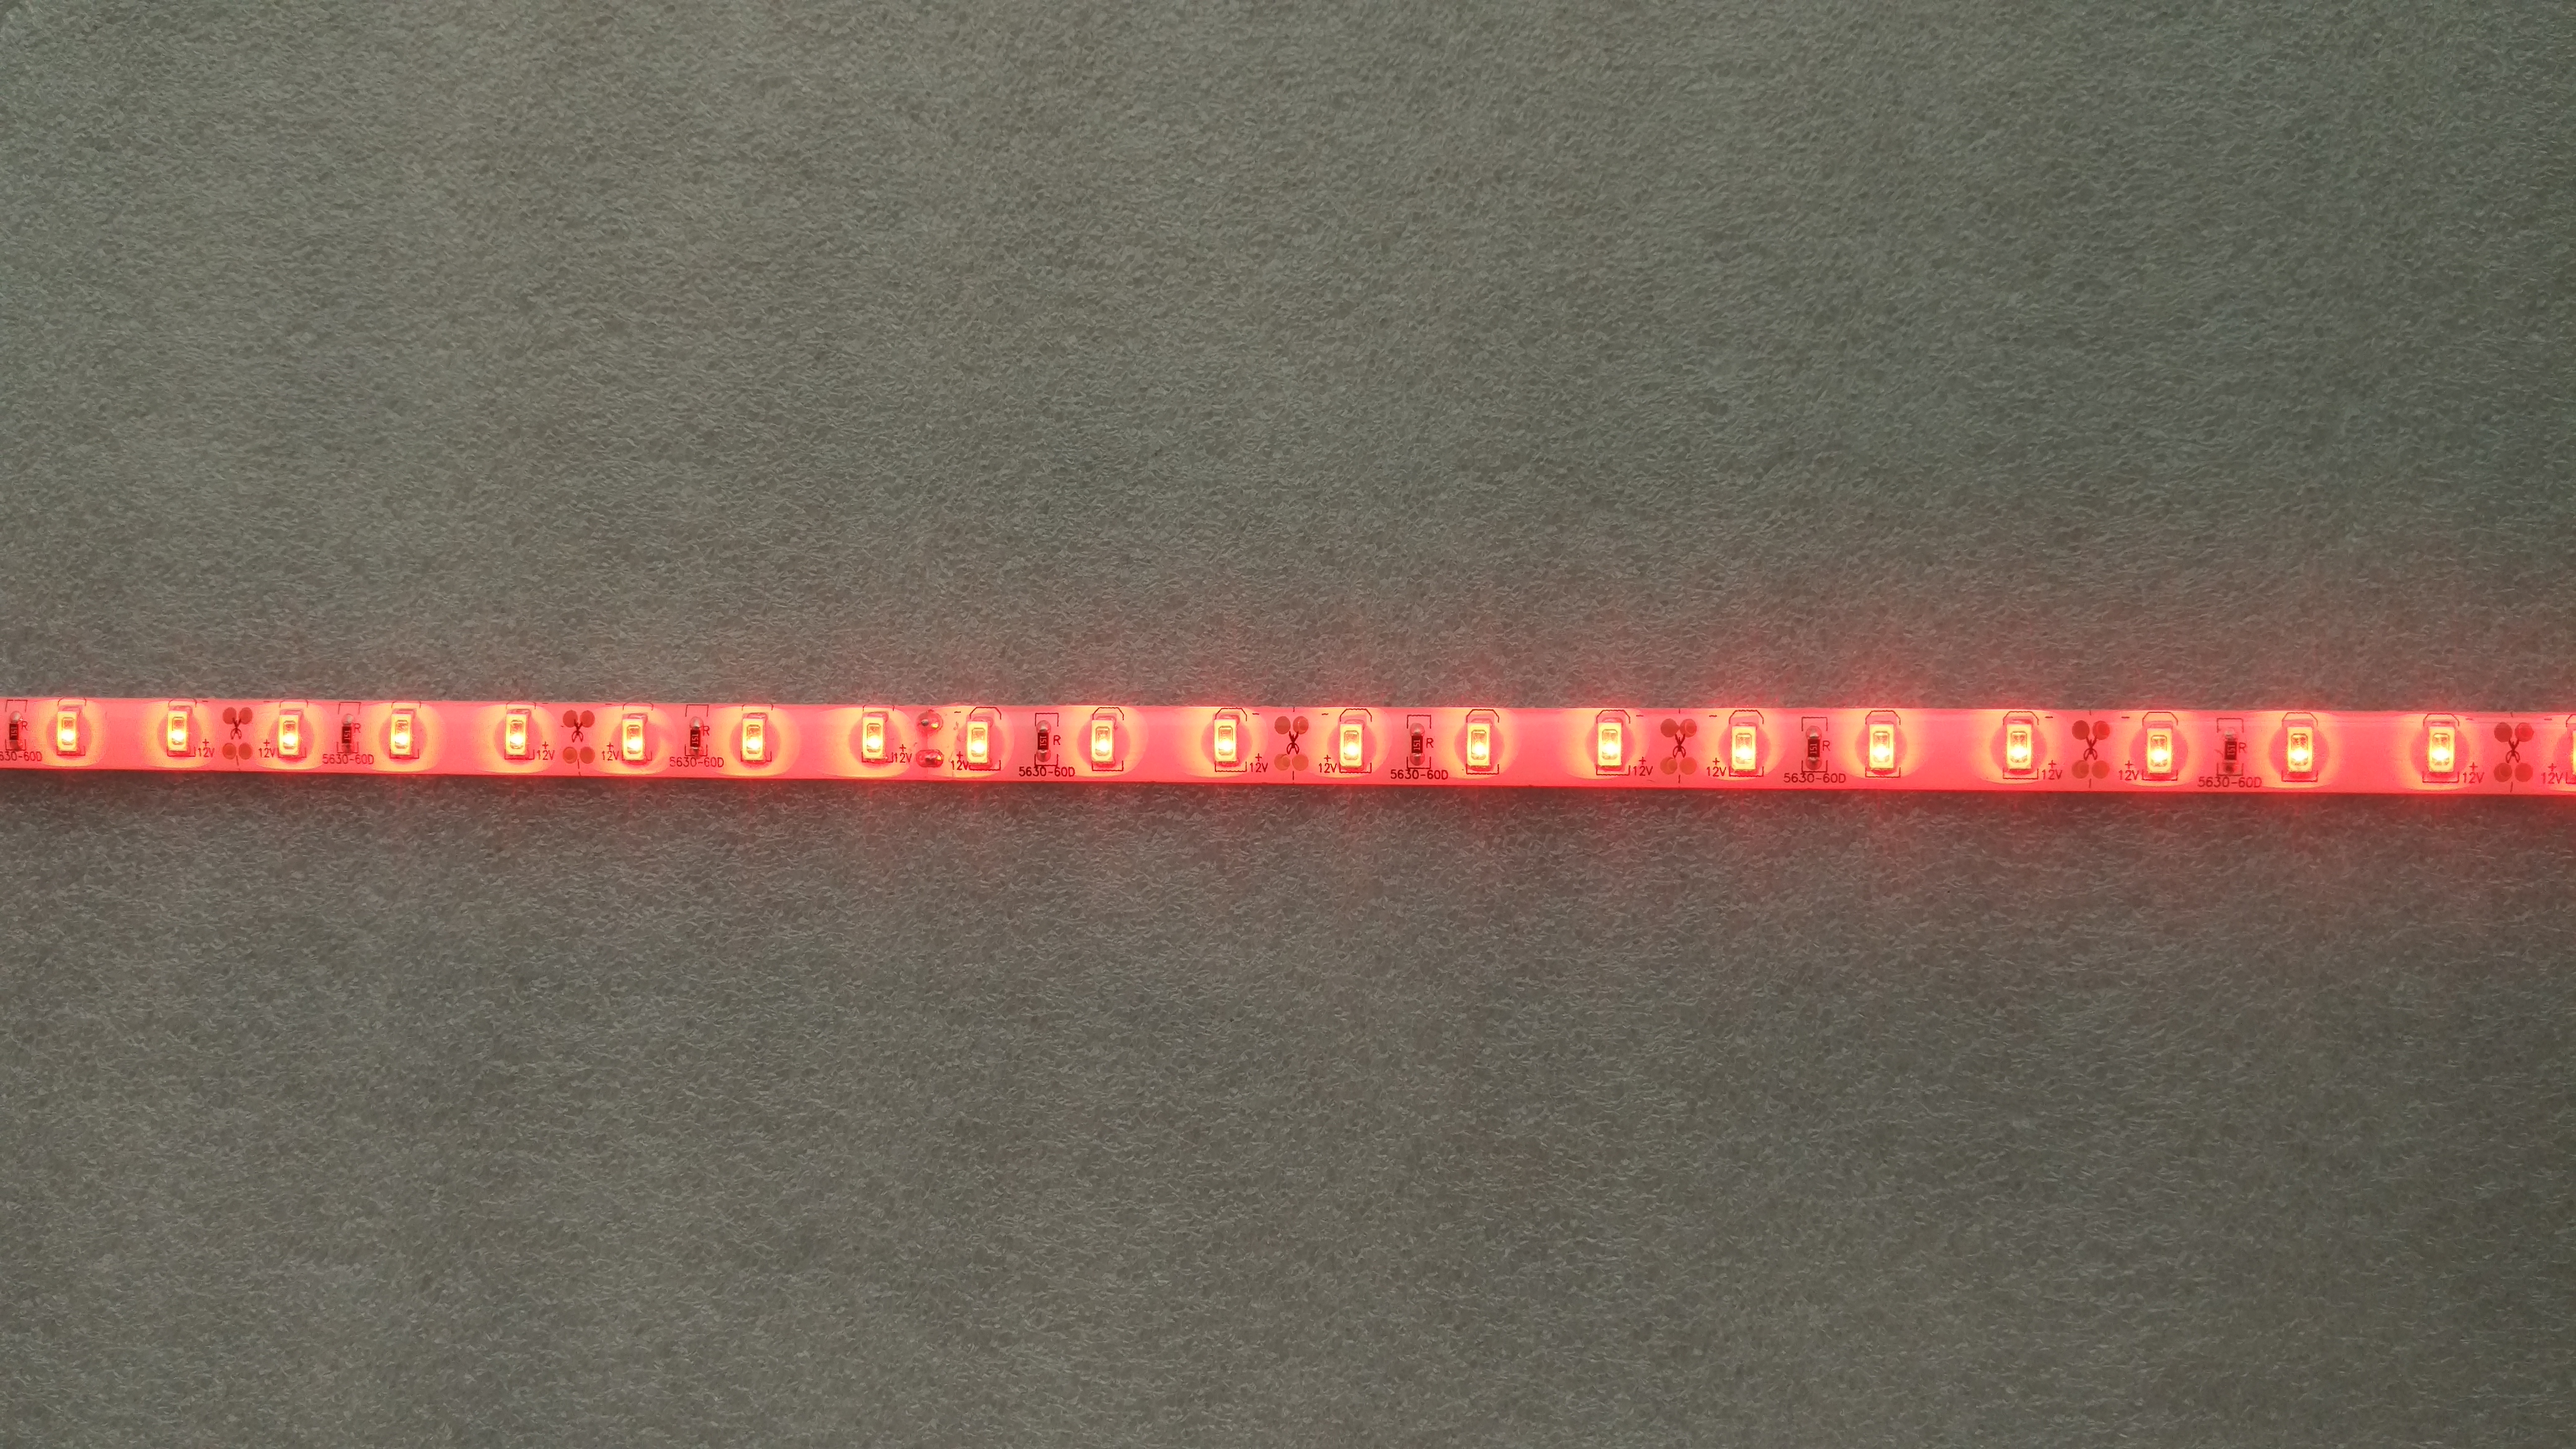 12V 5 meters 300 LEDs IP65 waterproof SMD 5630 5730 red light LED strip